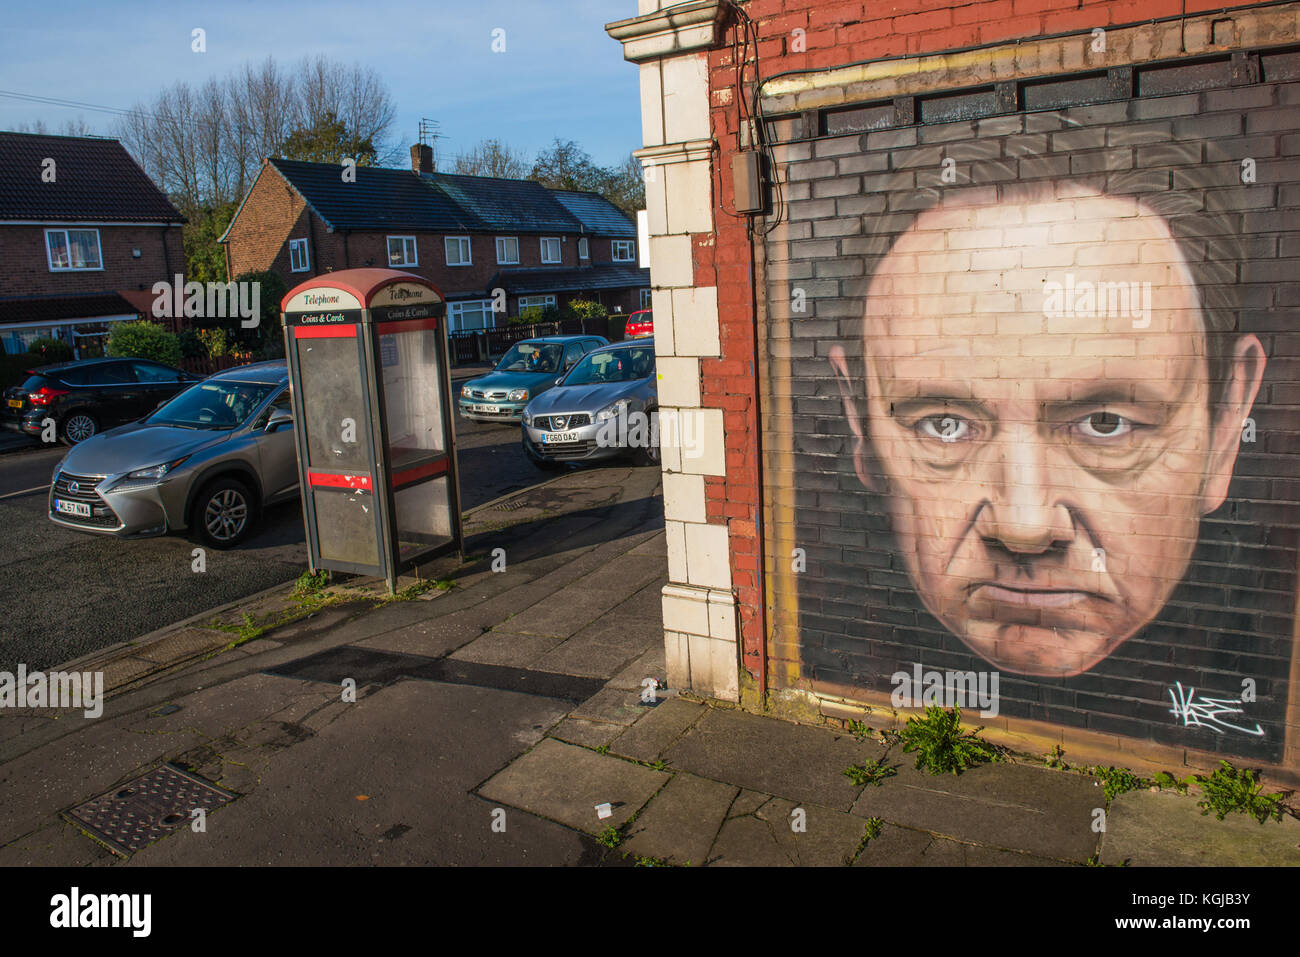 Manchester, UK. 08th Nov, 2017. Street artwork depicting actor American actor, director, producer and screenwriter - Stock Image